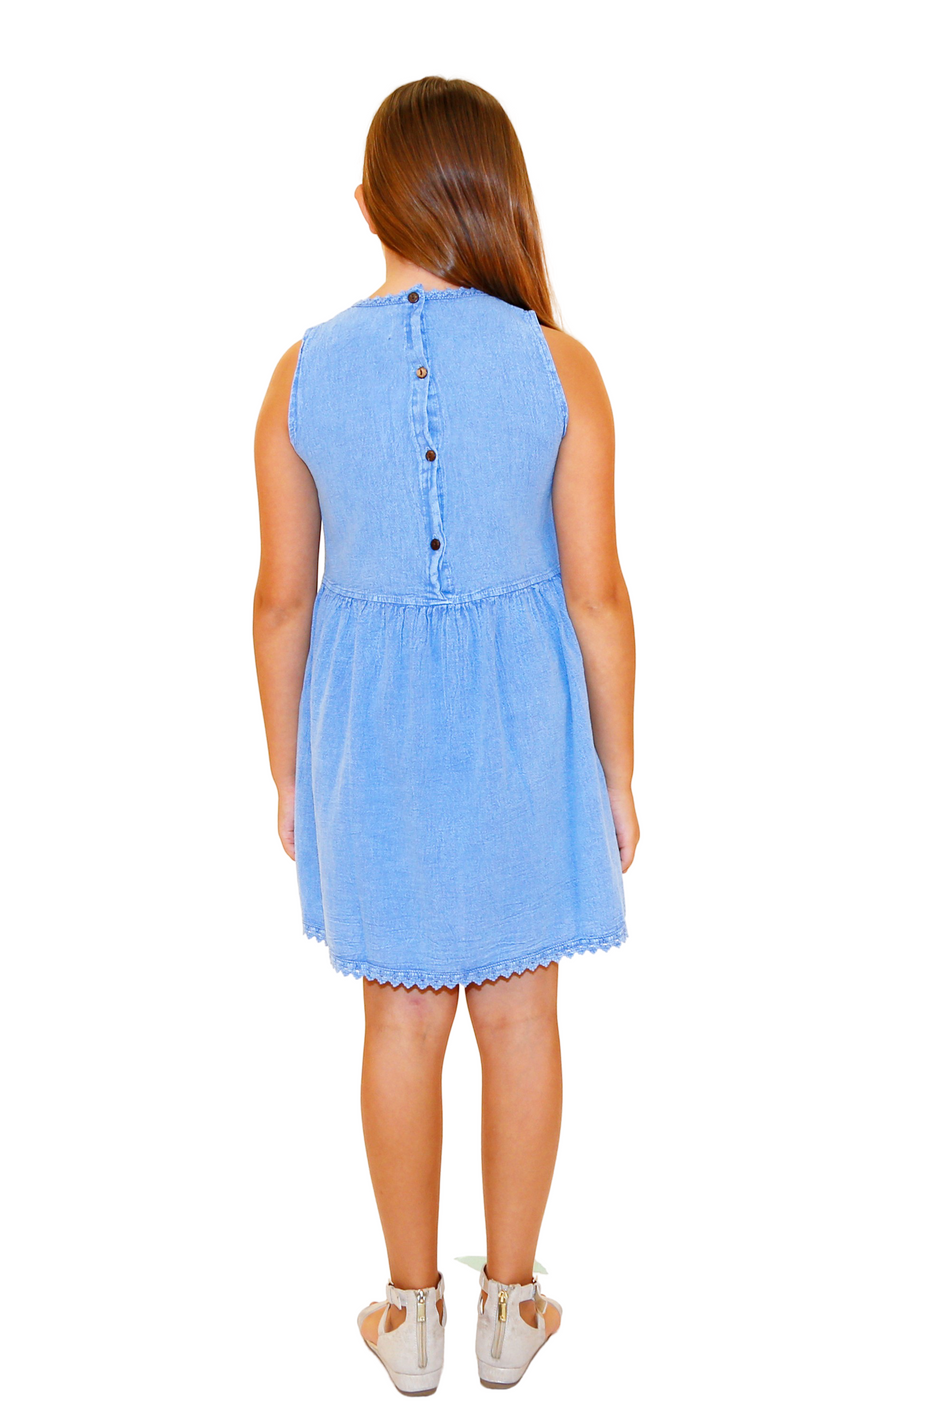 G1110 - Blue Cotton Dress